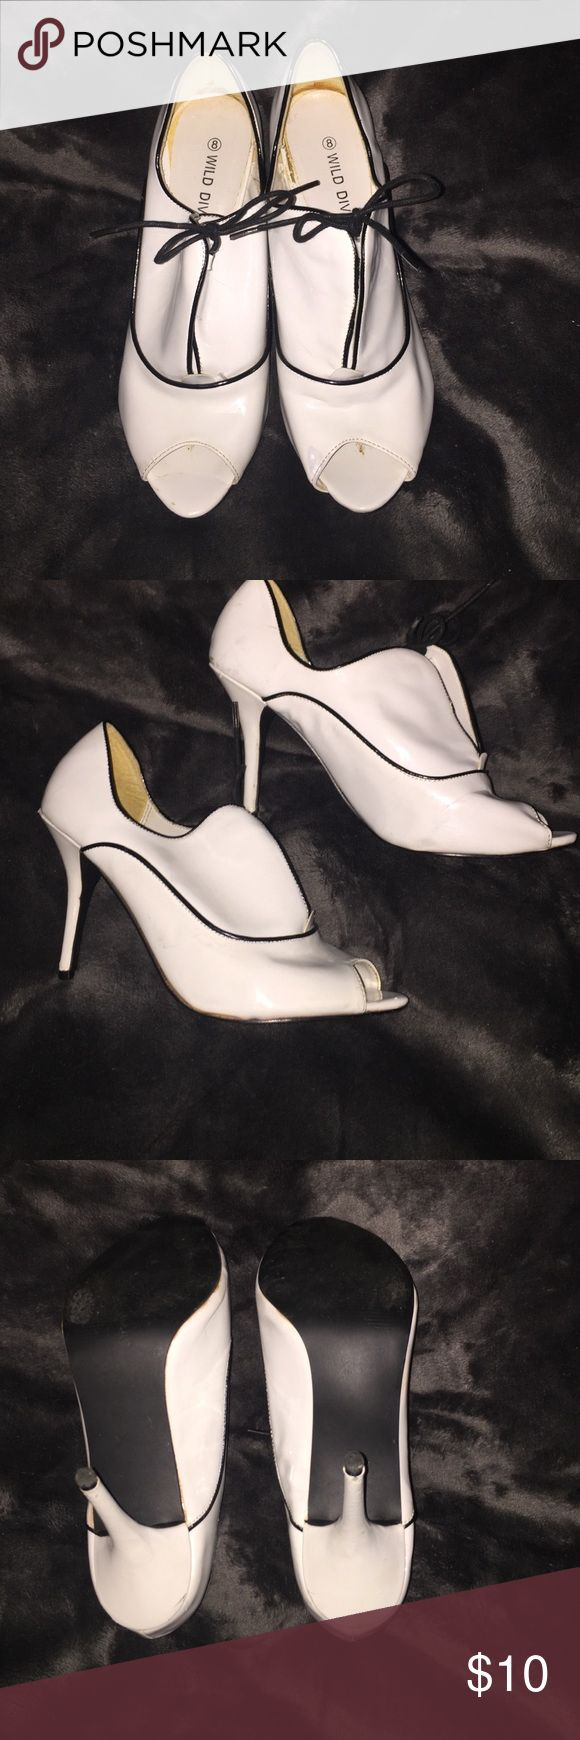 Wild diva black and white heels vintage gatsby Super cute patten leather shoes with black bows and trim. Gently used. Signs of wear shown in pics. Wild Diva Shoes Ankle Boots & Booties